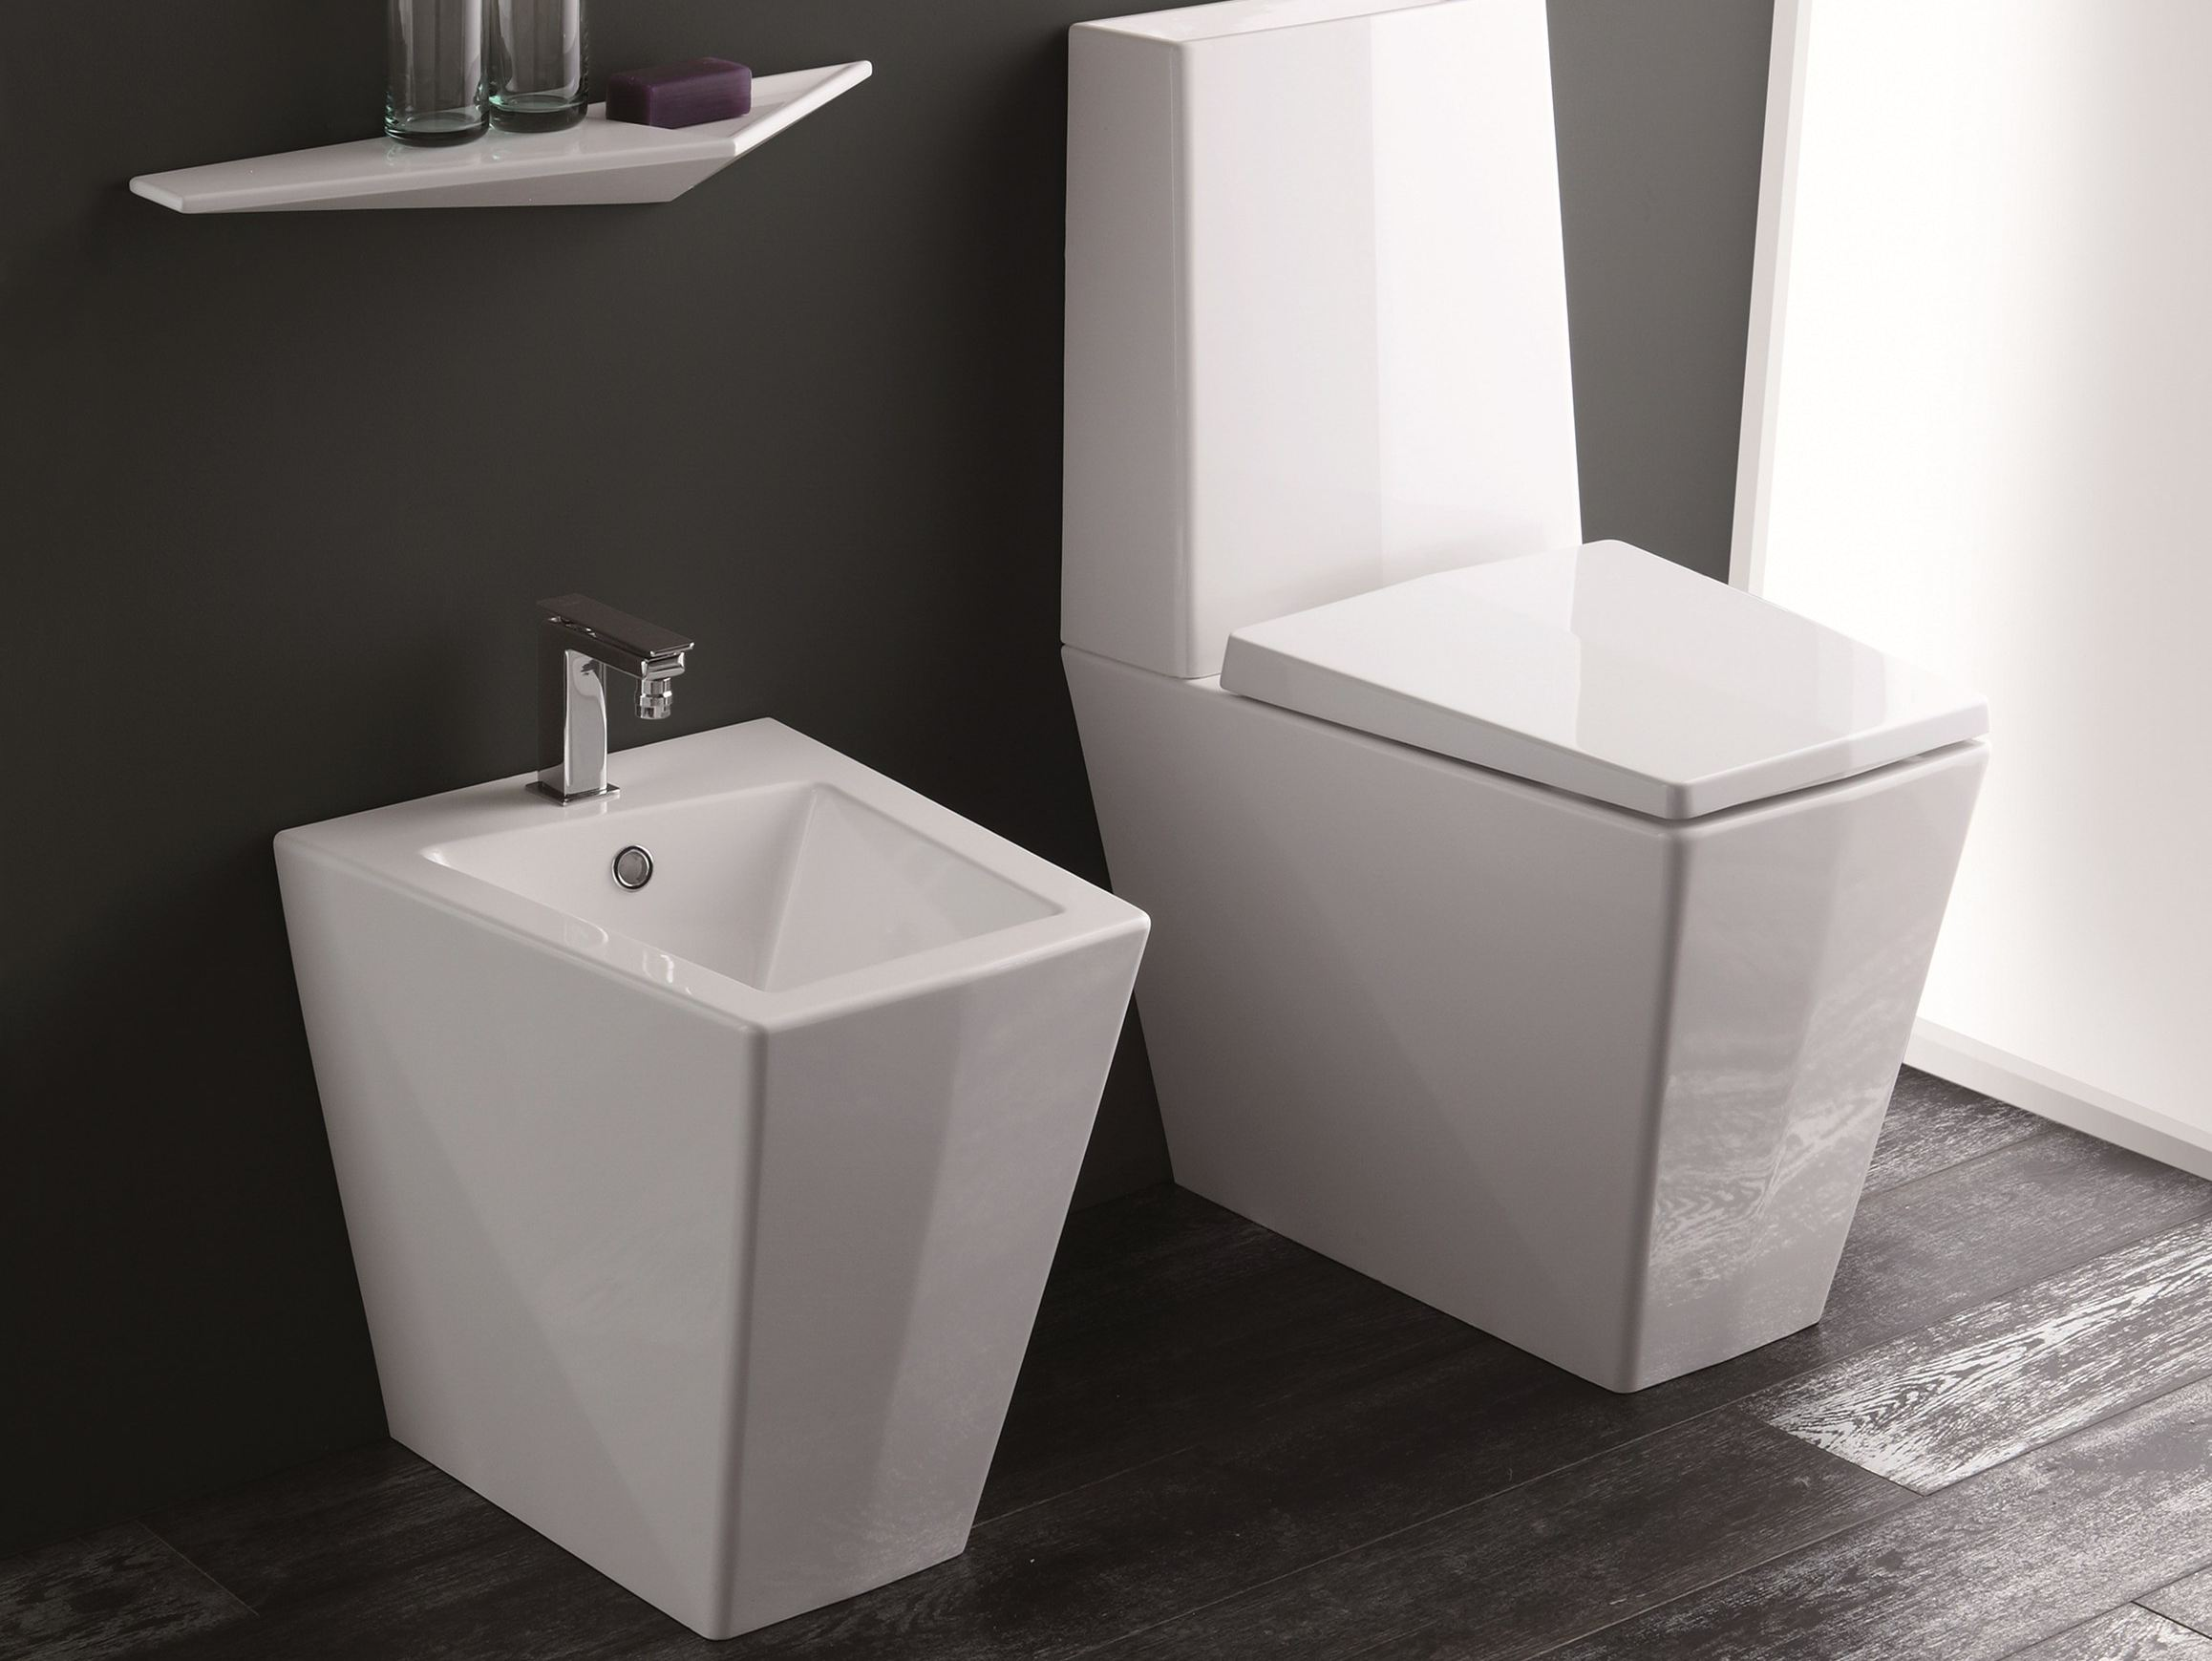 bidet de salle de bain les derni res id es de design et int ressantes appliquer. Black Bedroom Furniture Sets. Home Design Ideas